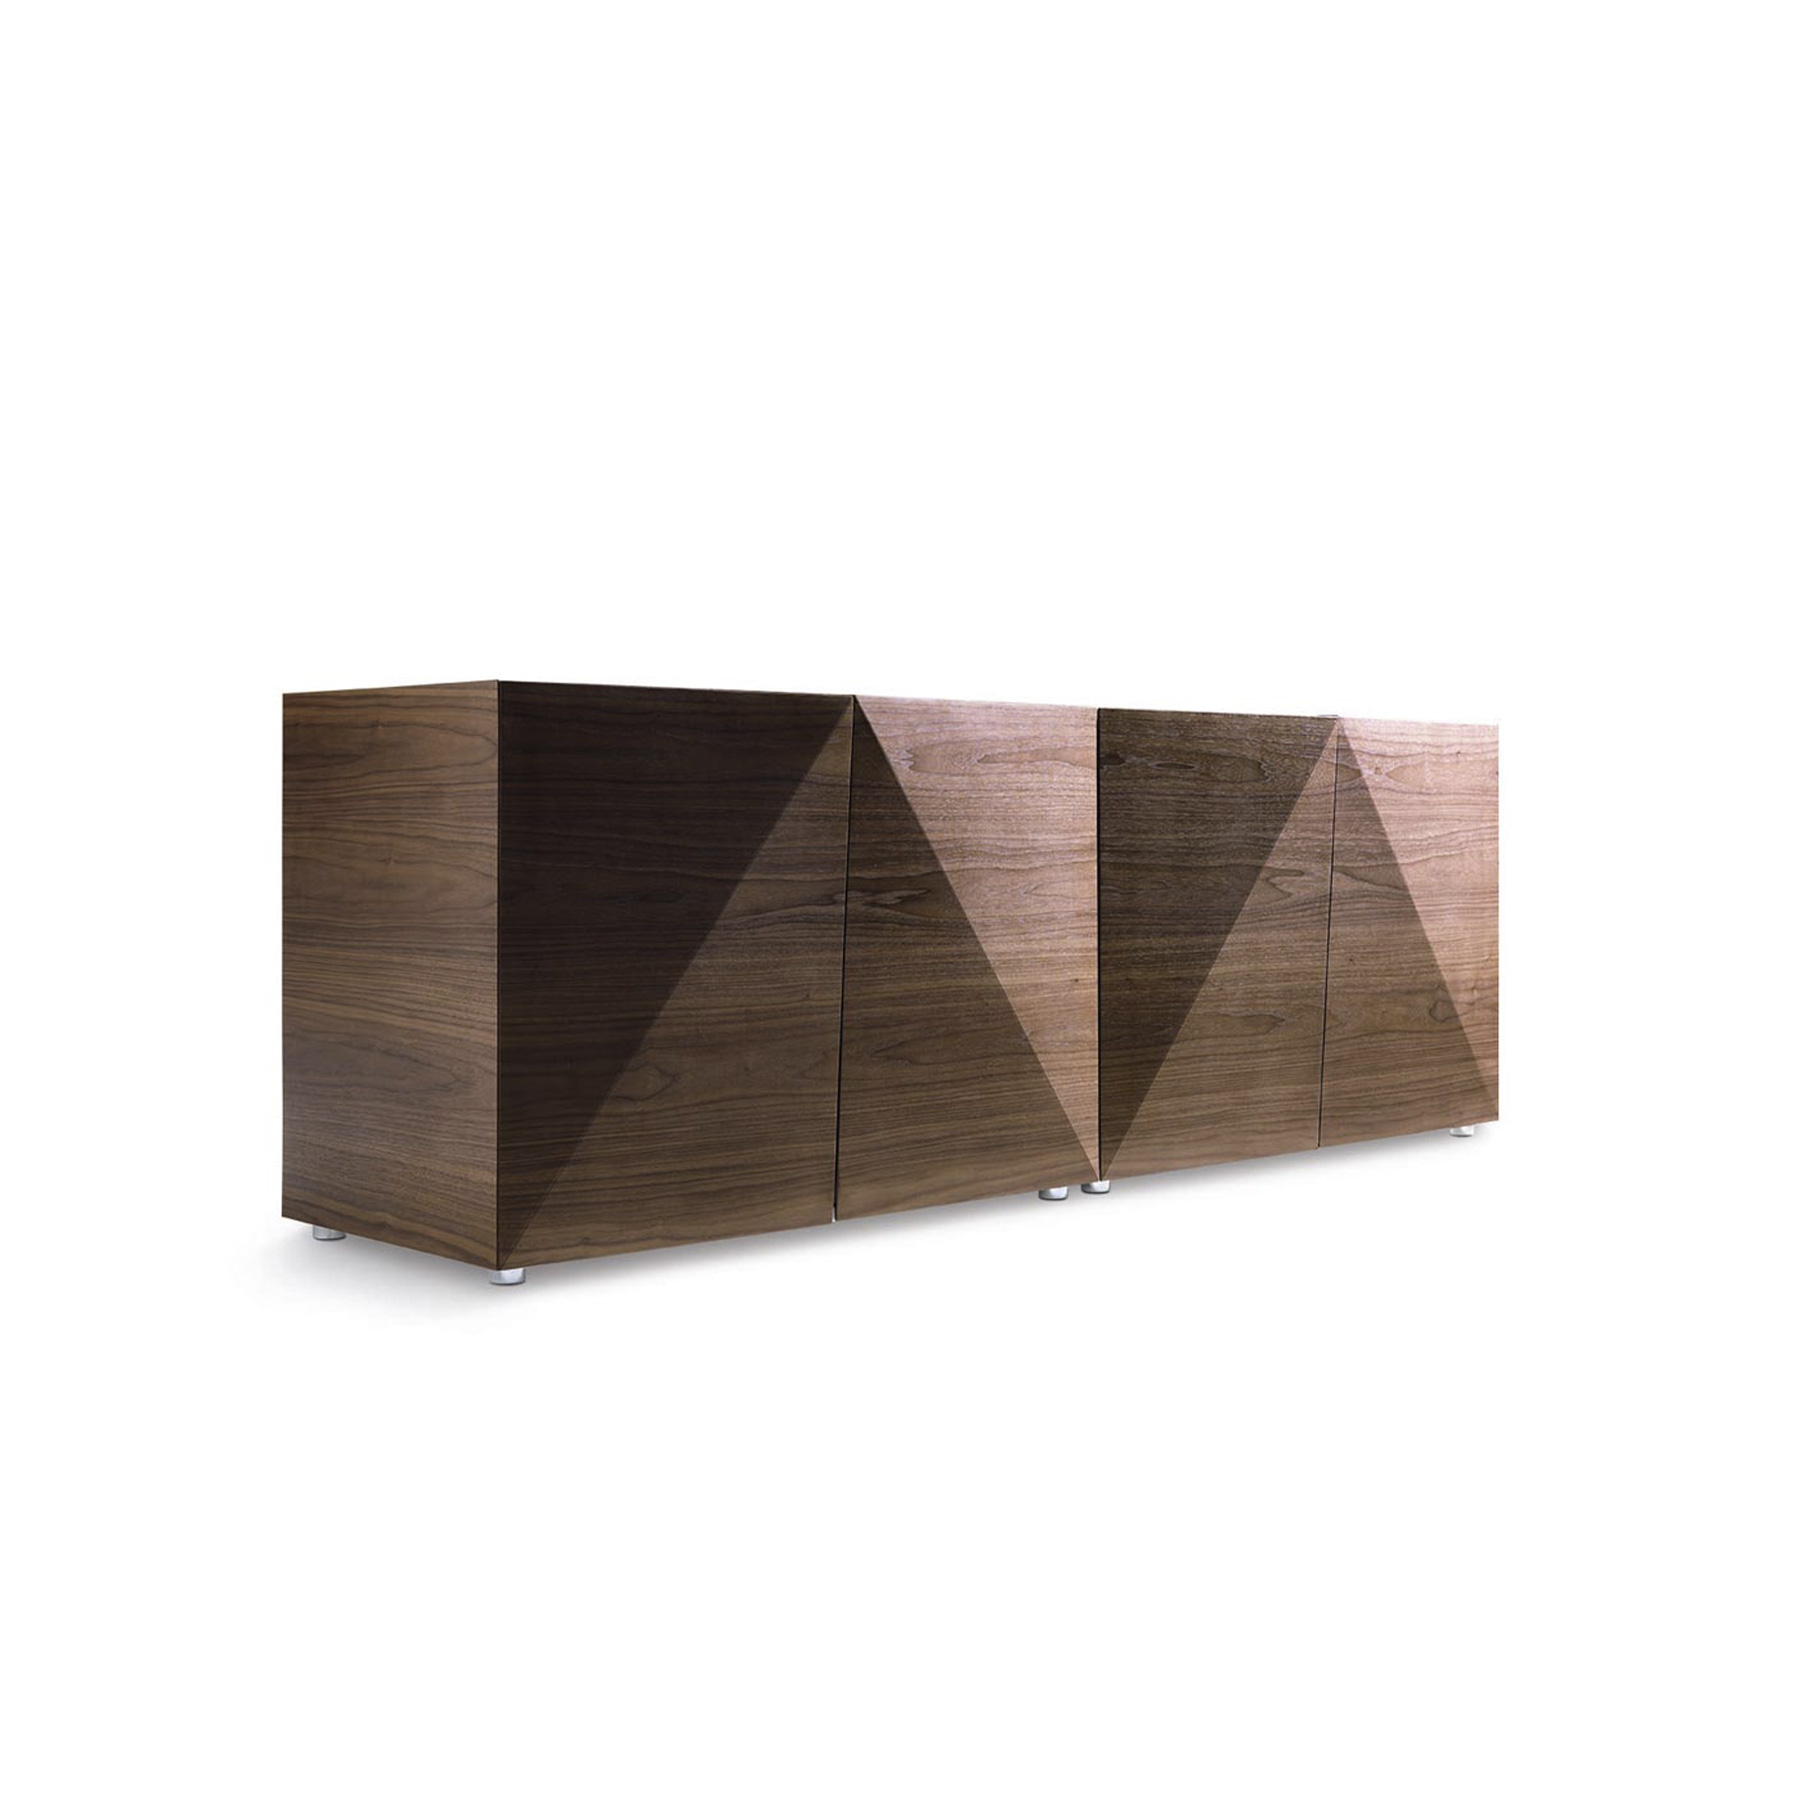 Not Riddled Sideboard - <p>Not Riddled features a set of diamond-shaped doors that can be operated without hinges. Steven Holl has managed to shape a wood-fabric piece that through small, laser-inscribed incisions, can be folded in an origami-like fashion, holding the container sides. It comes in two heights: 66 cm and 98 cm. The structure is made from lacquered particleboard or MDF. Sides and doors made from a material designed and patented by Horm, composed of a sandwich of walnut veneer and fabric 2.2 mm thick, which, thanks to a number of superficial incisions made with a laser cutter, can be folded up like origami. Transparent tempered glass shelves, with a polished edge, 5 mm thick. Not Riddled is the sublimation of a contemporary and intelligent application of mechanical innovation. All cabinets are available with H16 cm or H32 cm metal base, as an alternative to the H2 cm feet.</p>  | Matter of Stuff